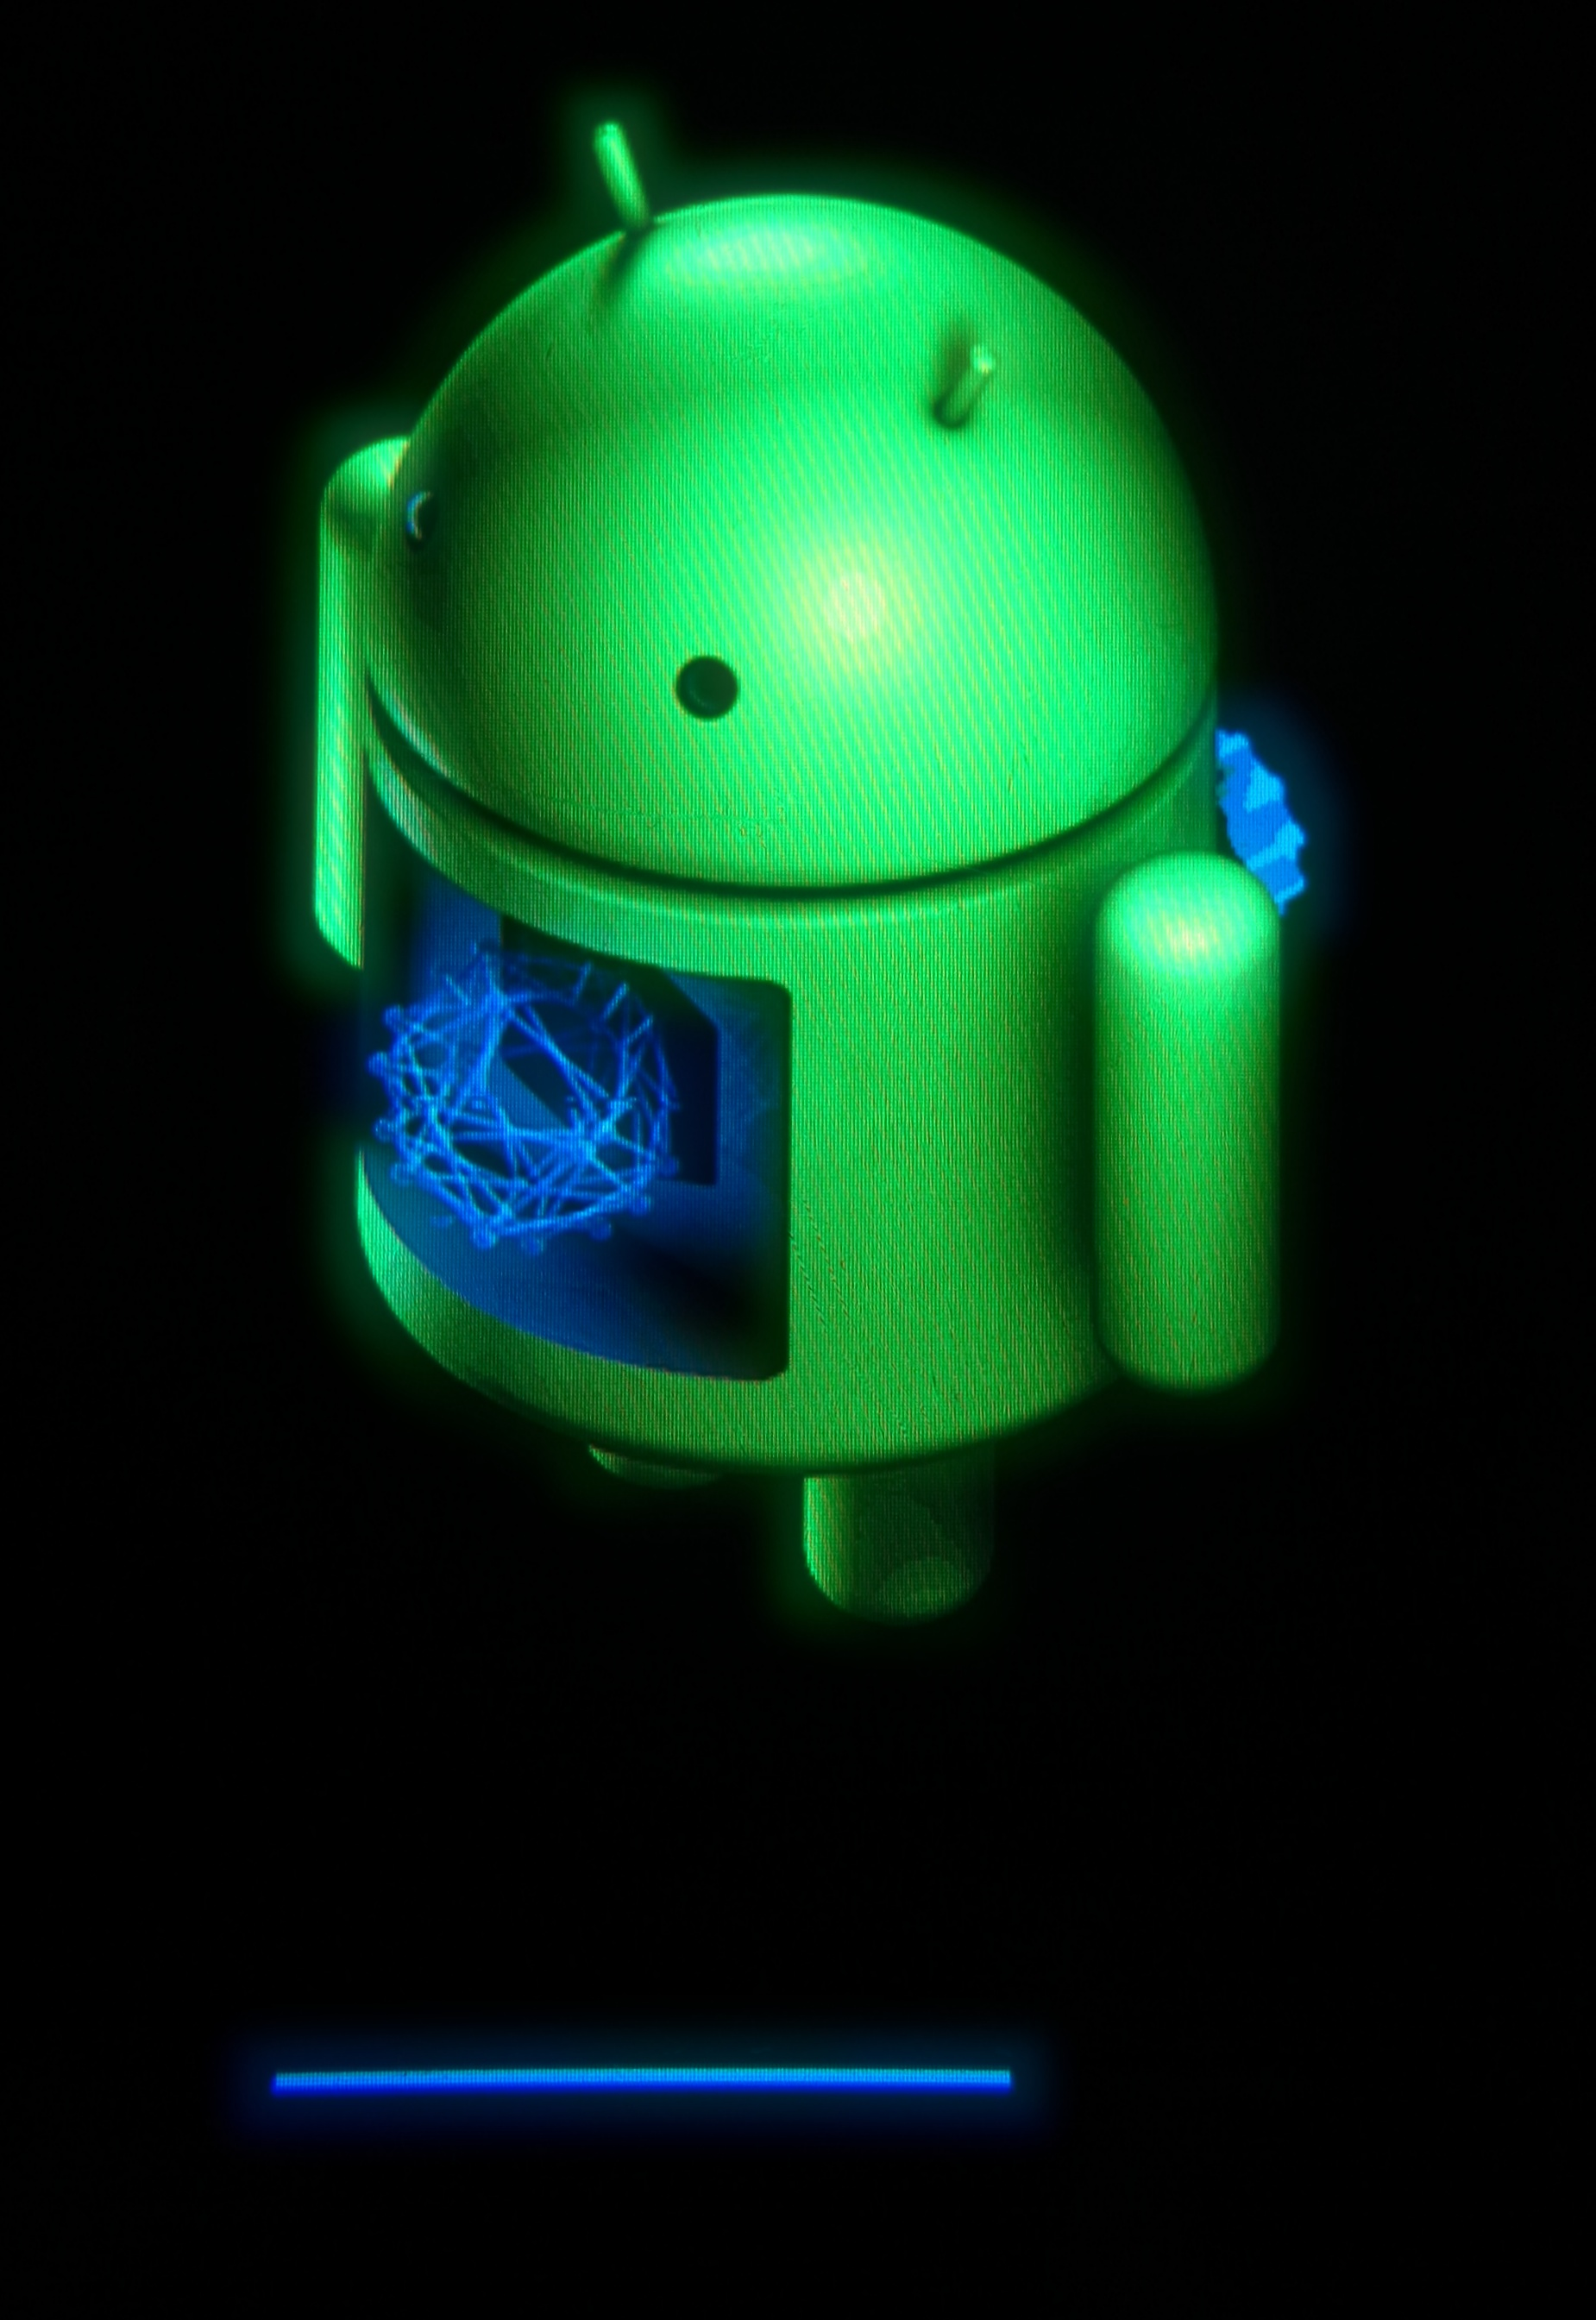 3d Animated Wallpaper For Android Mobile Android Updates Routers